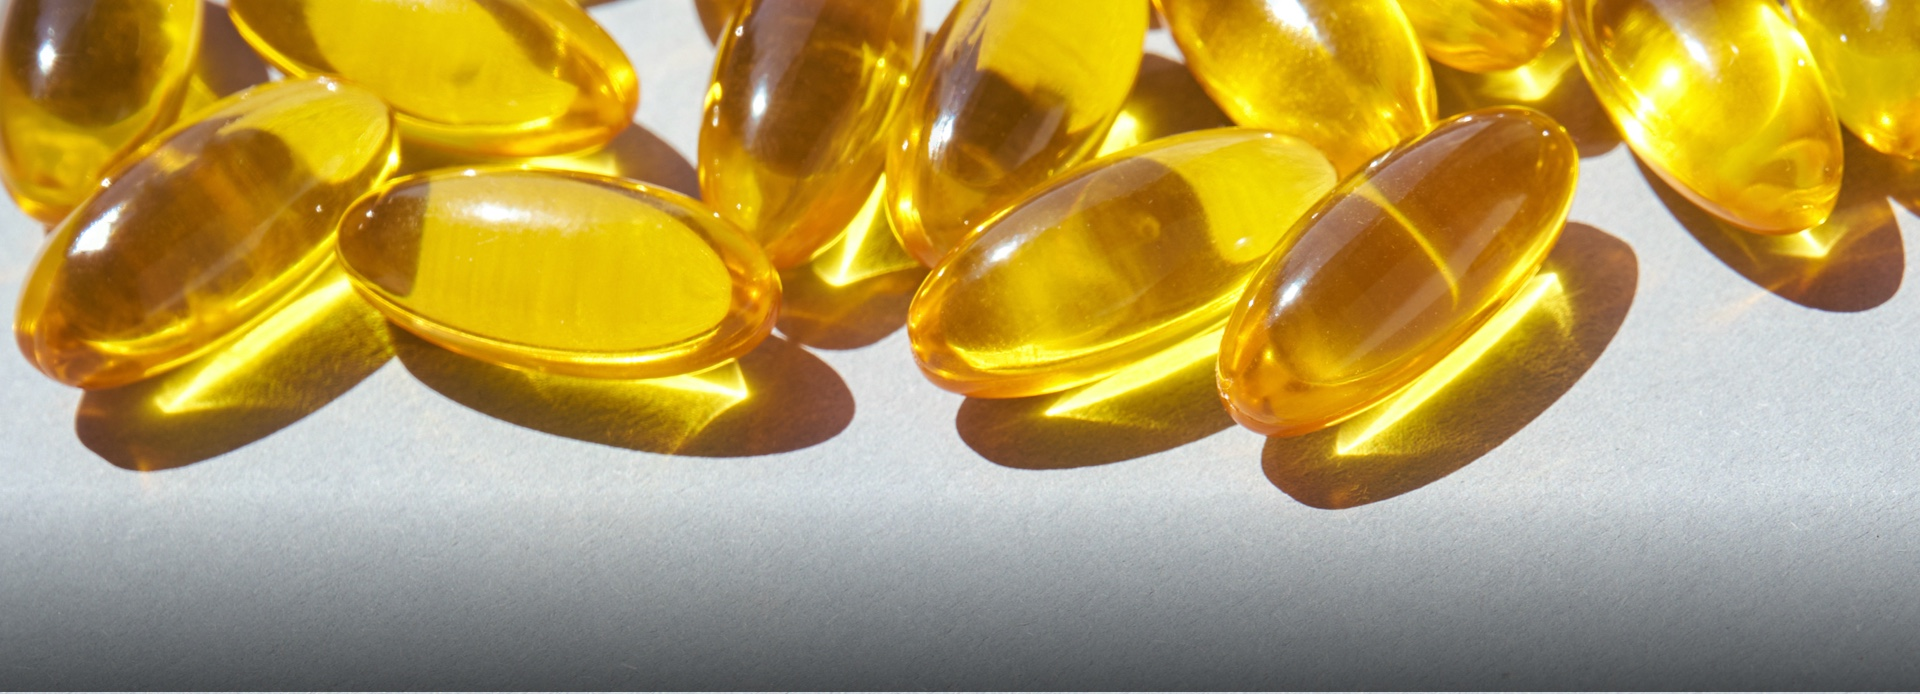 Omega-3 Fatty Acids – Health Benefits